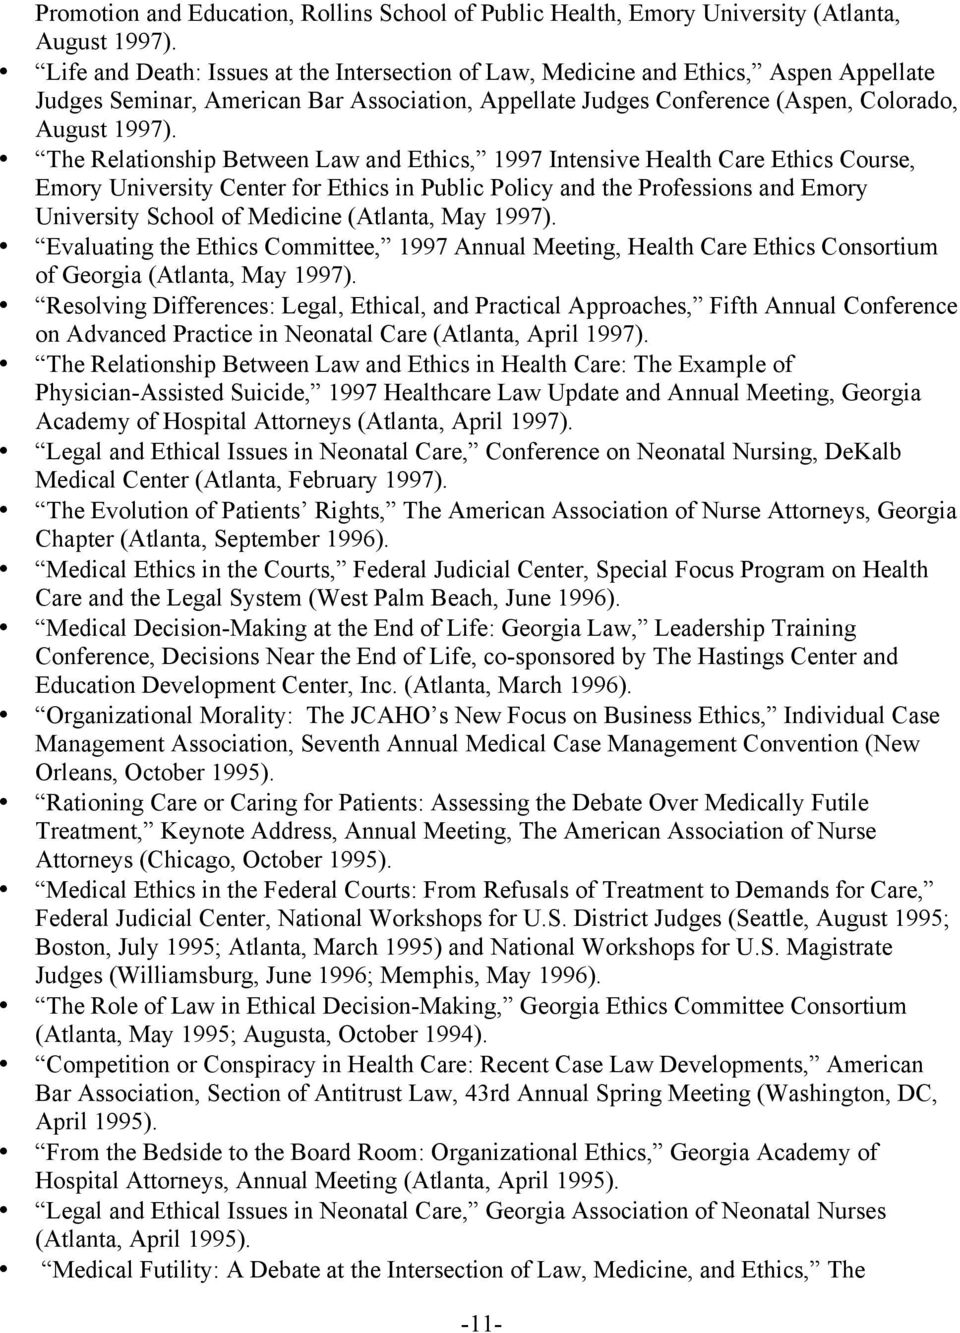 The Relationship Between Law and Ethics, 1997 Intensive Health Care Ethics Course, Emory University Center for Ethics in Public Policy and the Professions and Emory University School of Medicine